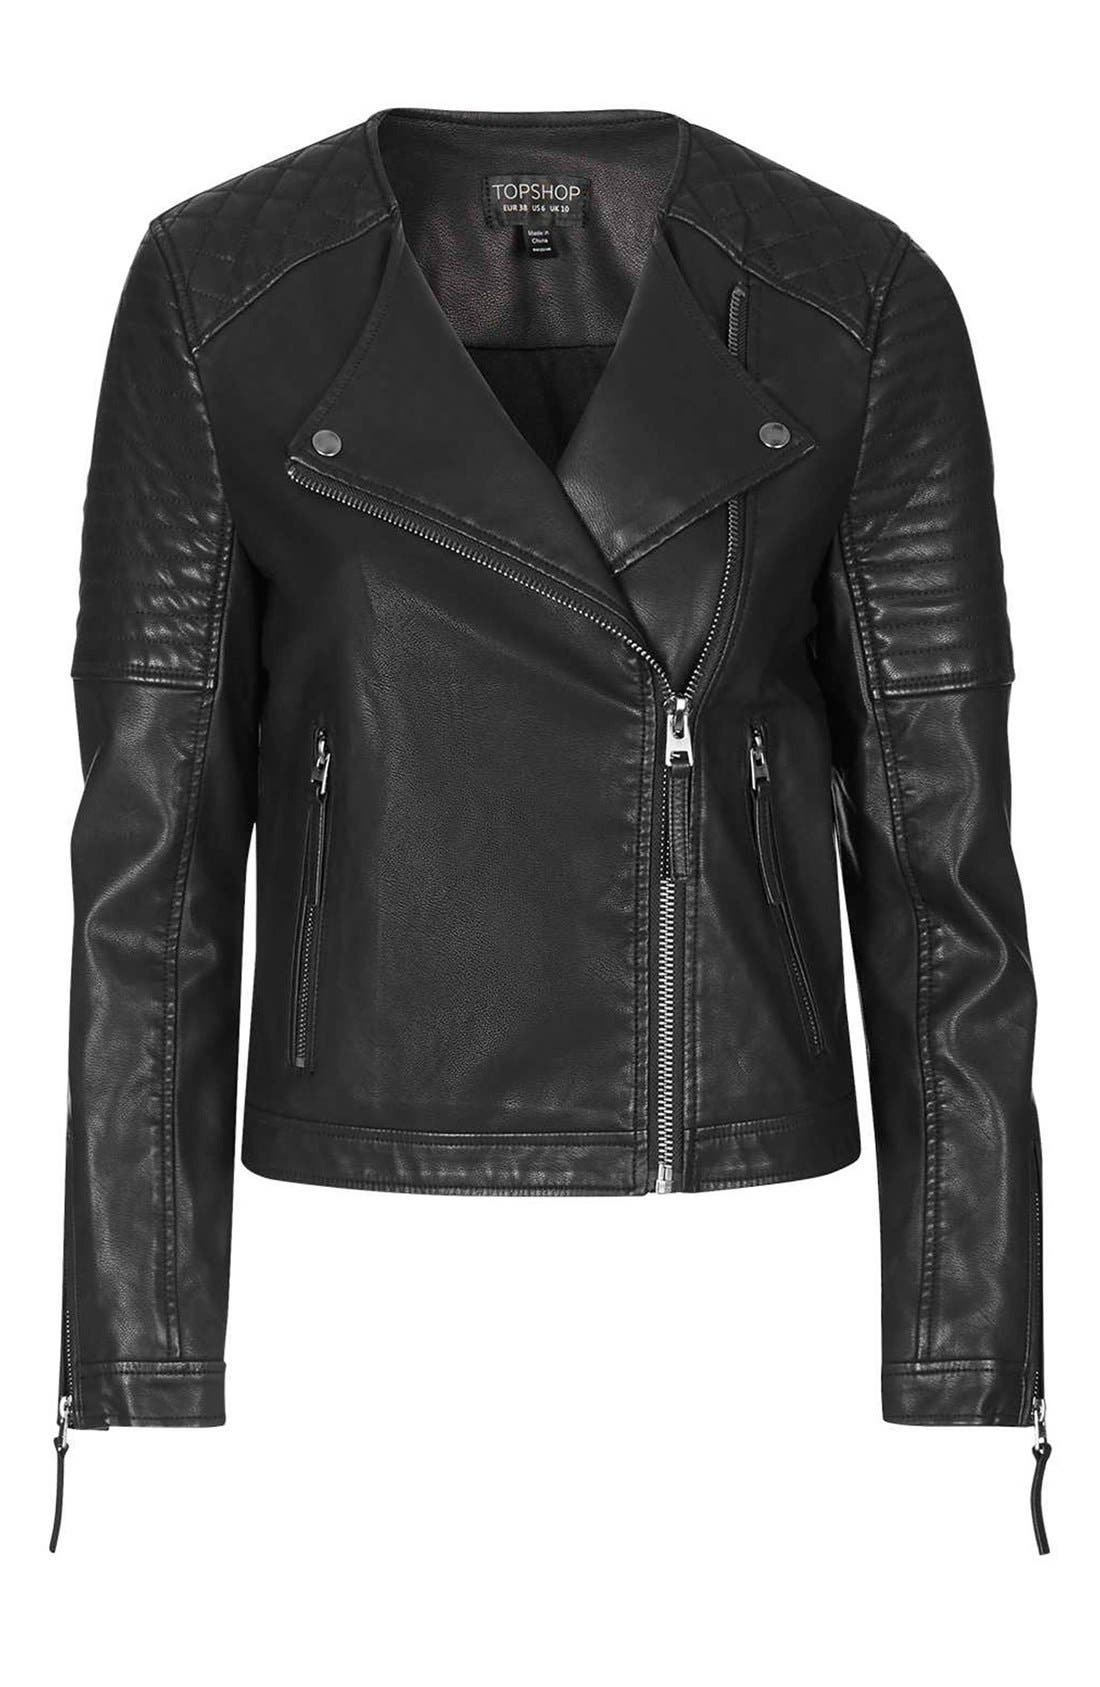 TOPSHOP, Faux Leather Biker Jacket, Alternate thumbnail 5, color, 001